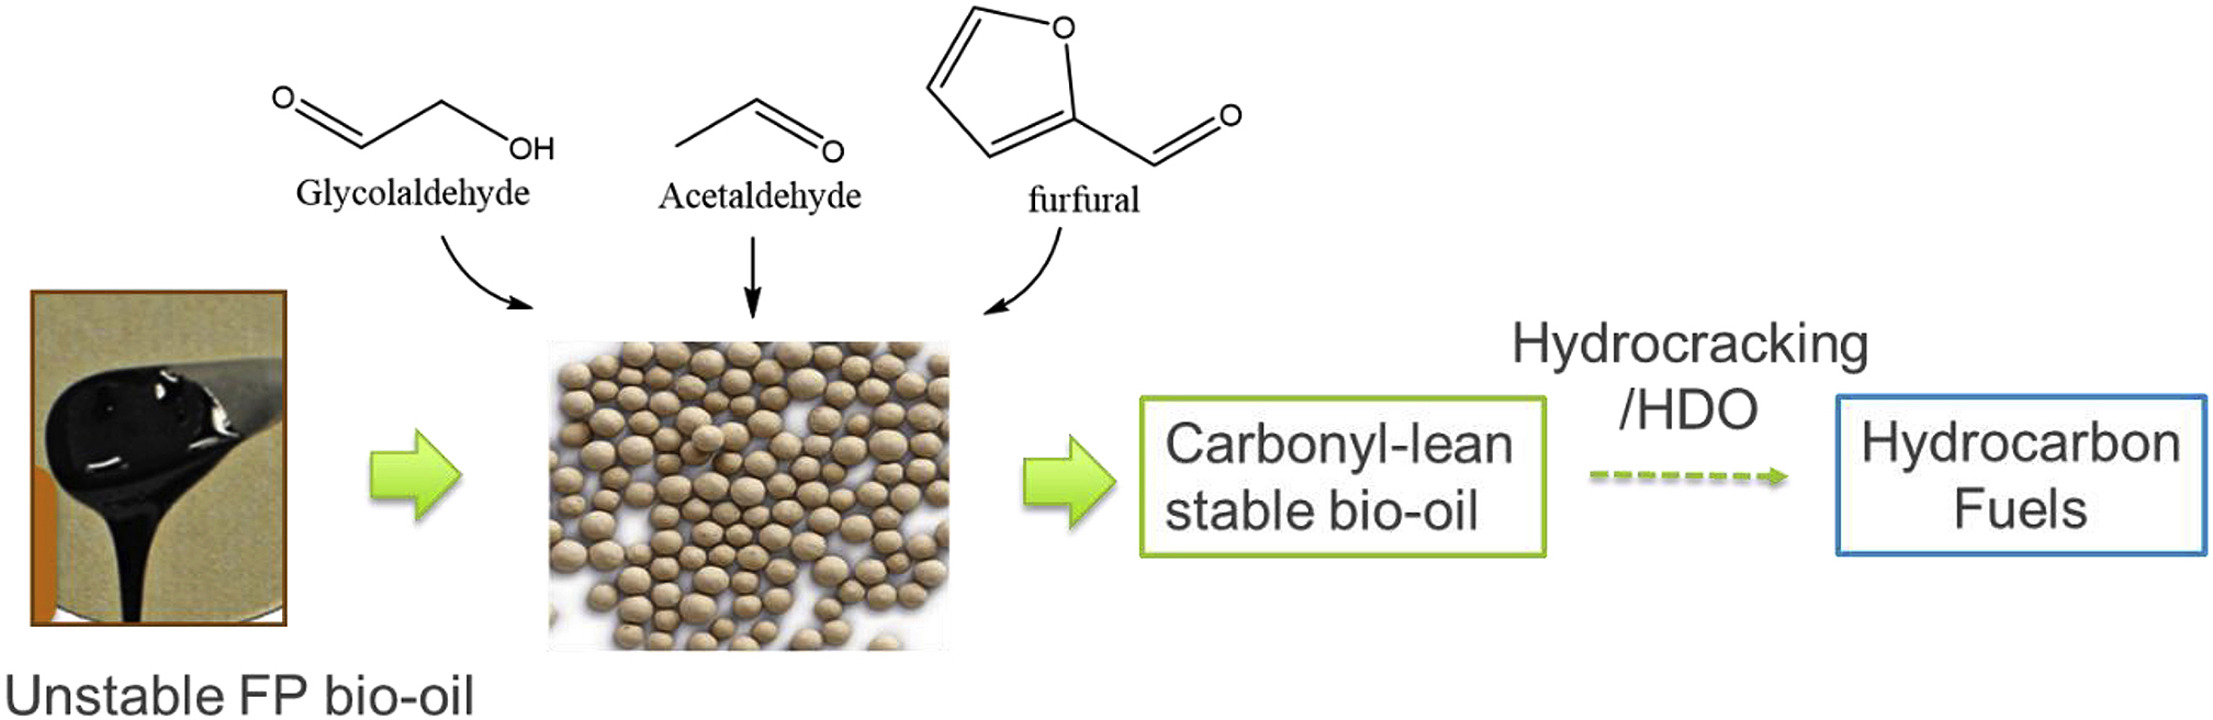 Selective adsorption removal of carbonyl molecular foulants from real fast pyrolysis bio-oils